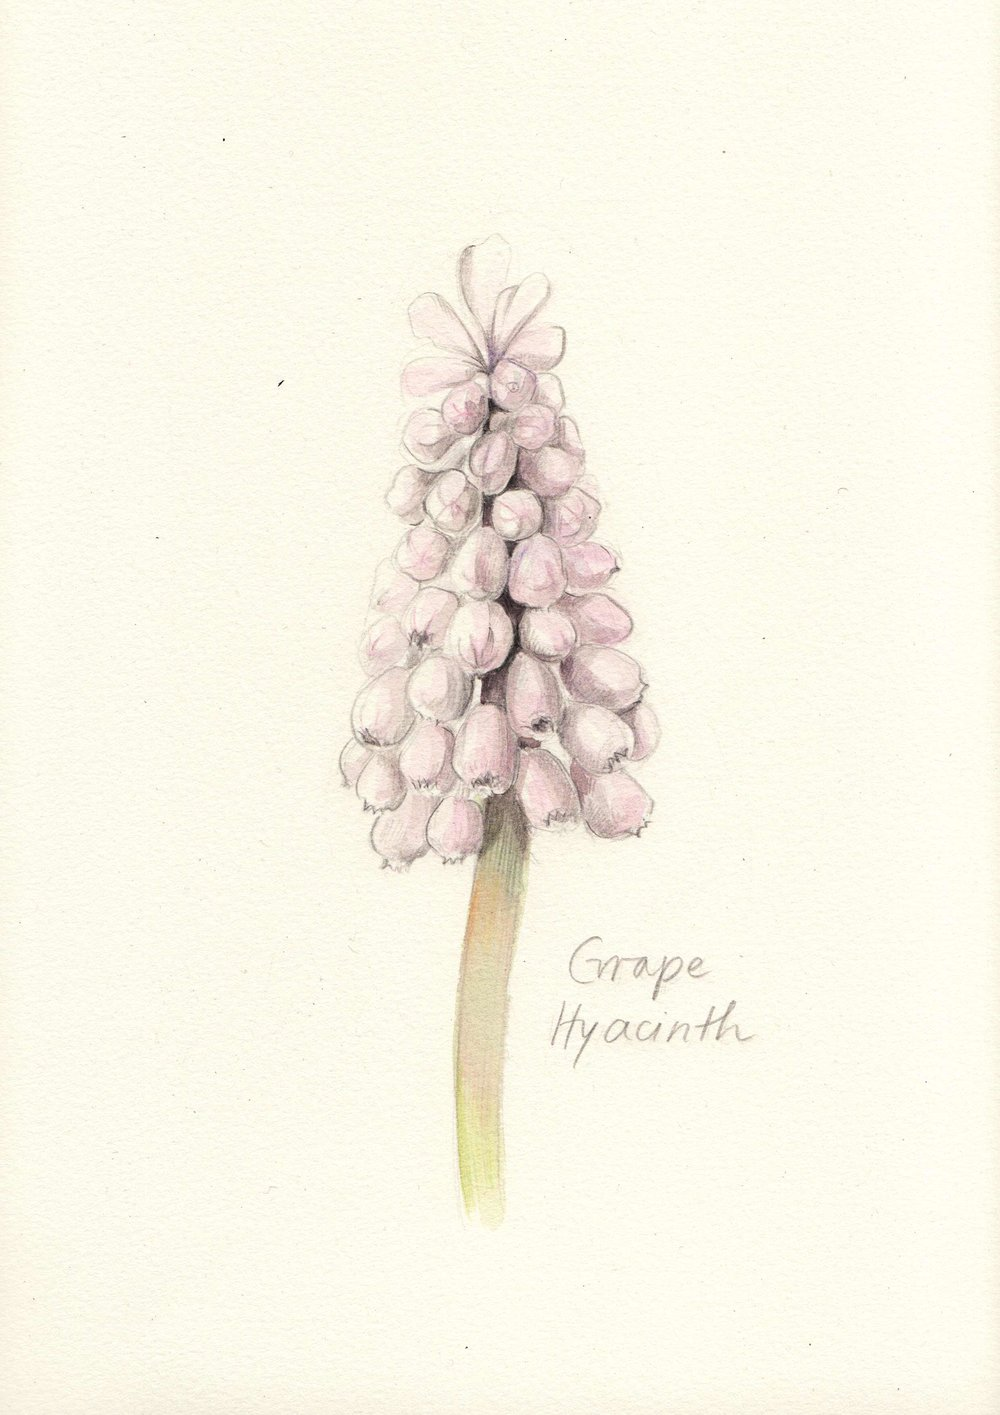 Sq_GrapeHyacinth.jpg